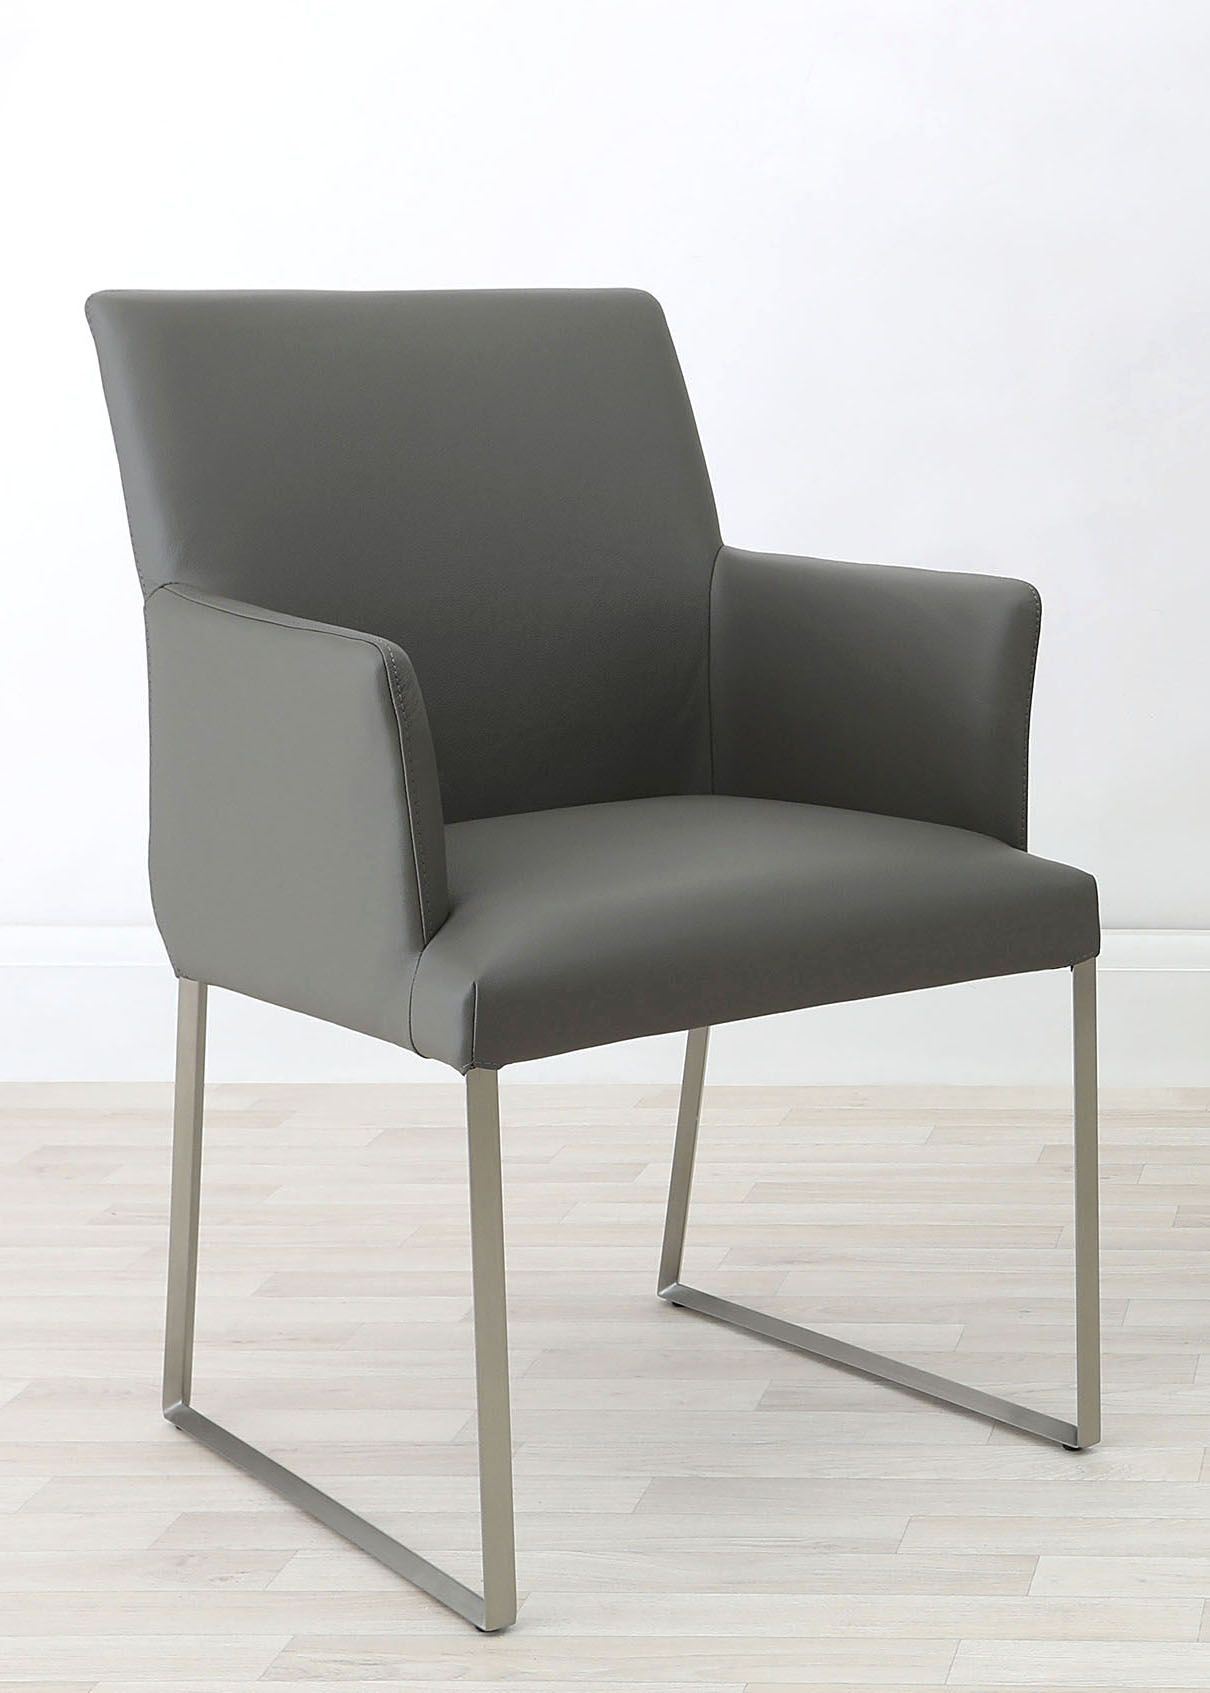 Super Monti Real Leather Armchair In 2019 Danetti Modern Machost Co Dining Chair Design Ideas Machostcouk